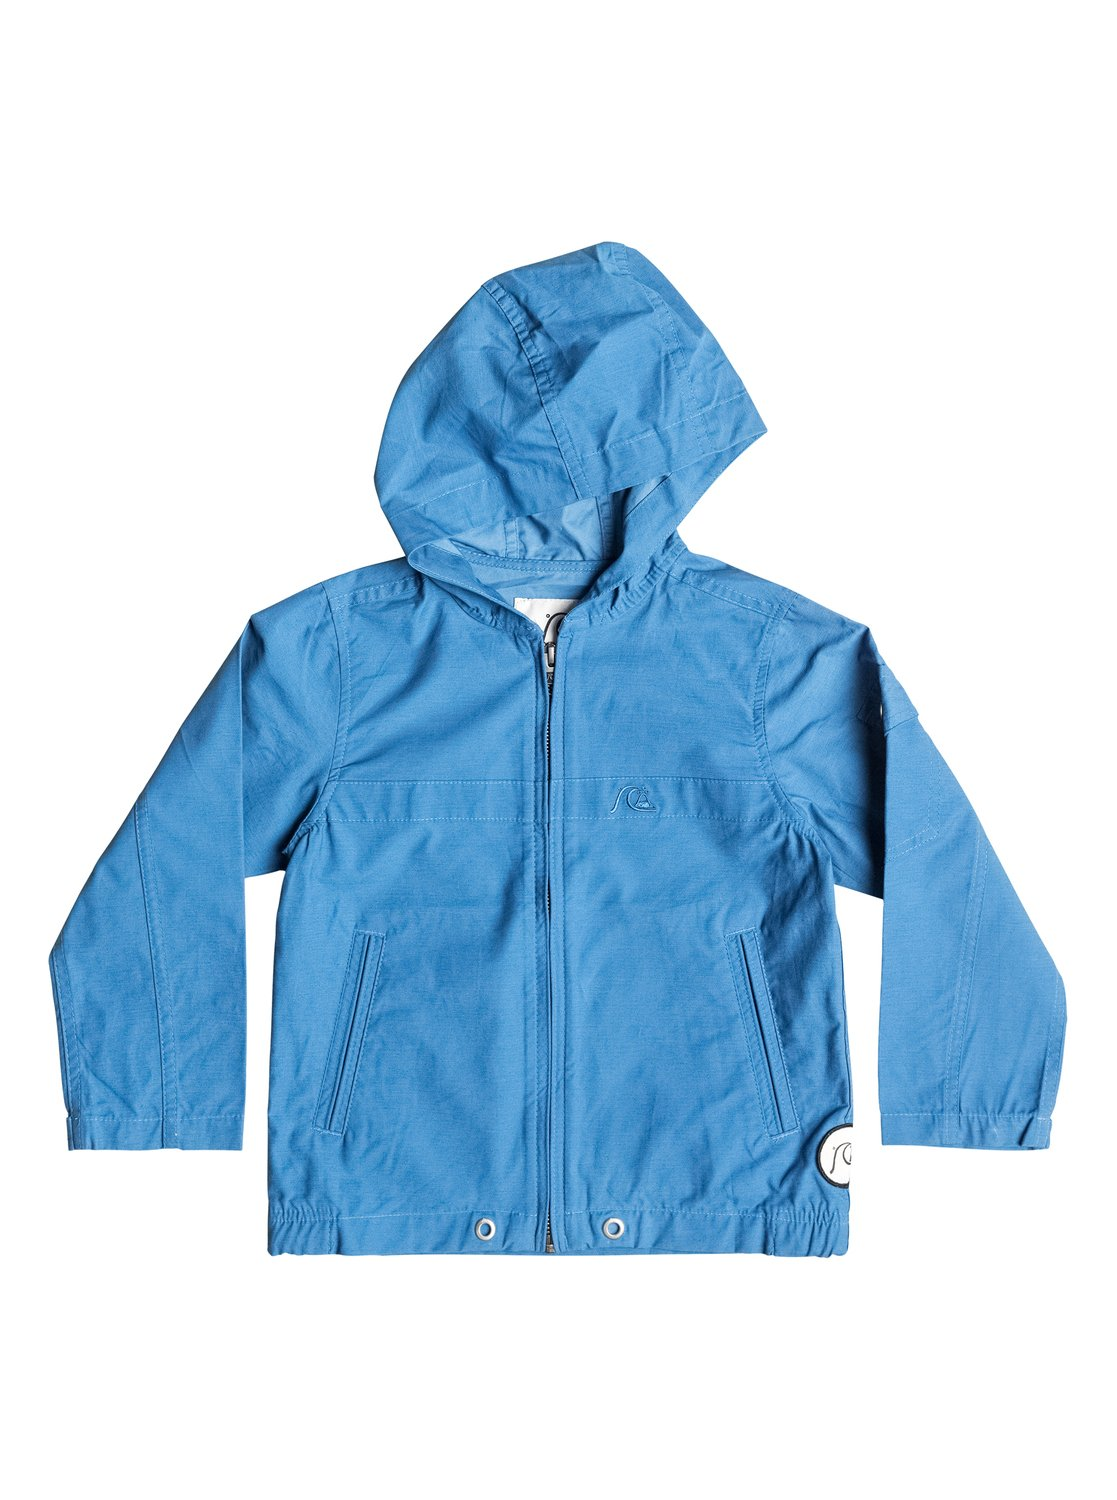 Boy's Shoreline Parka Jacket